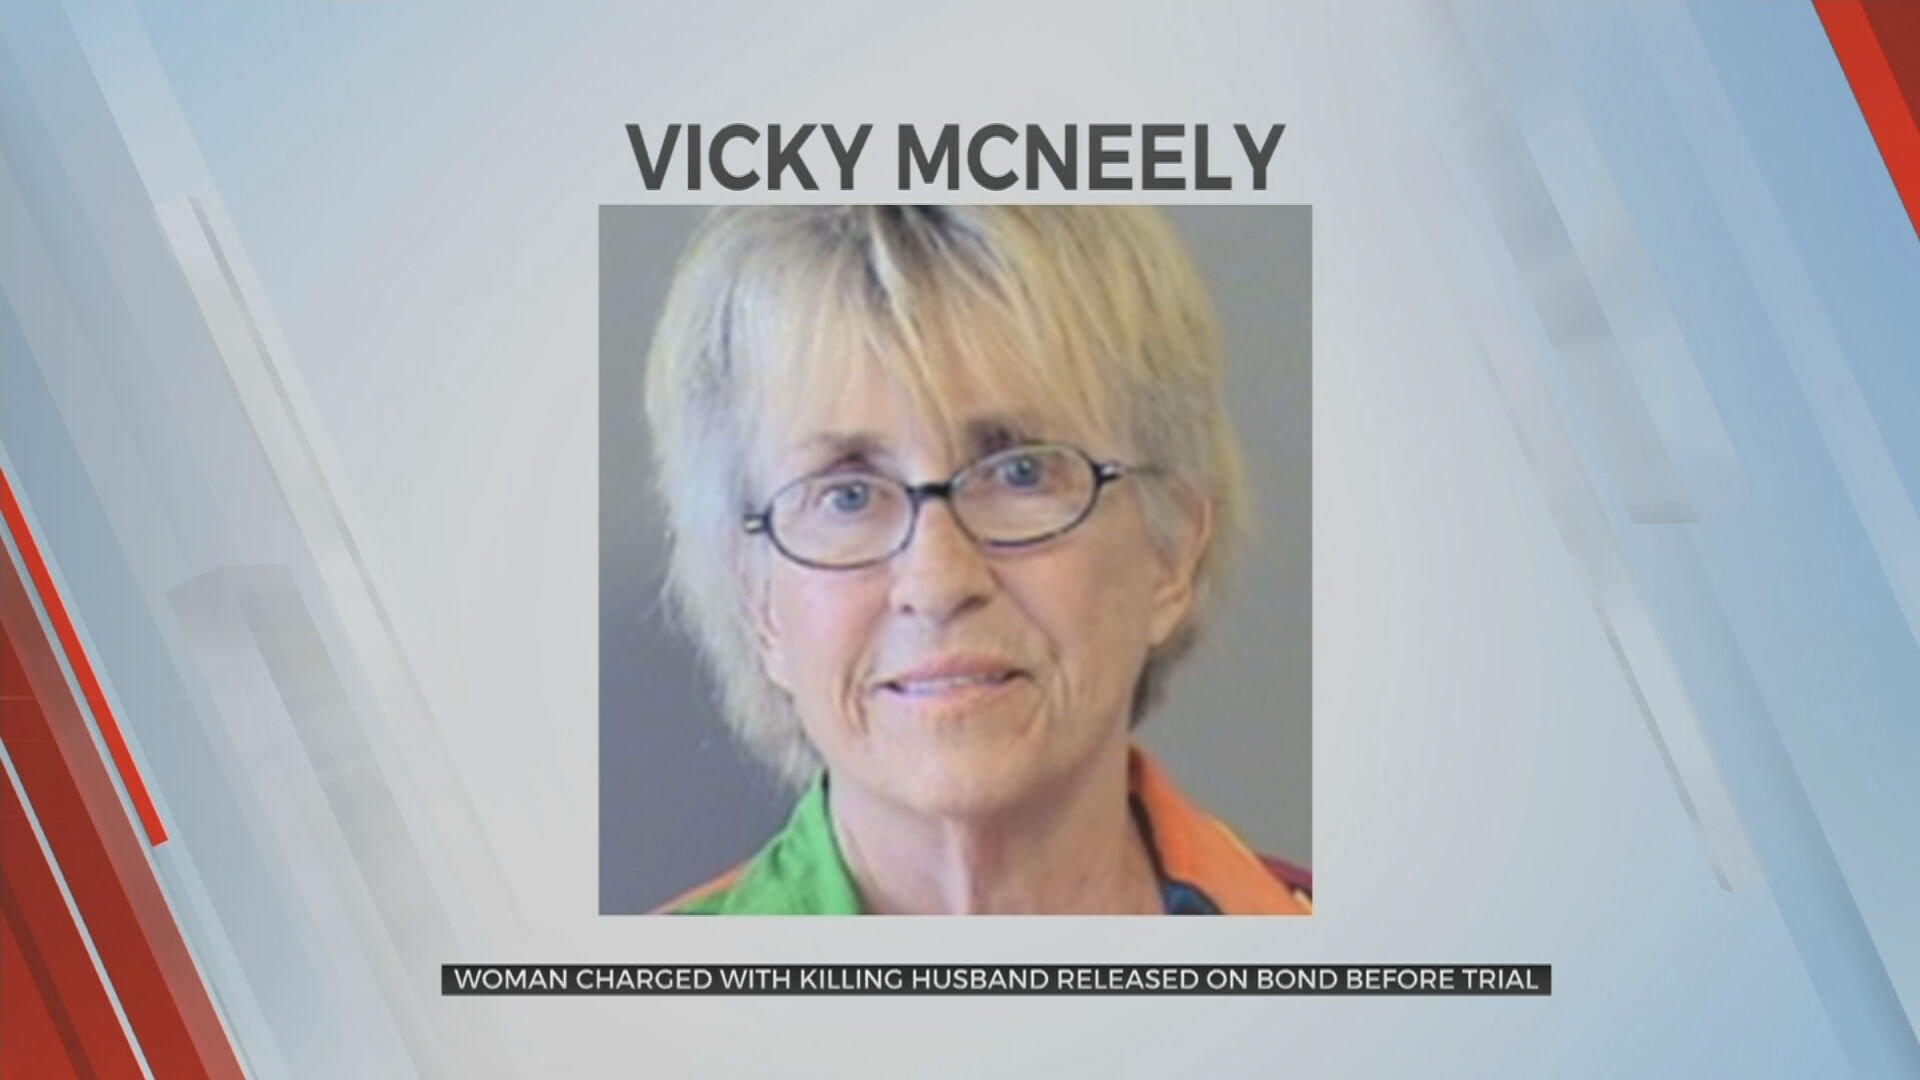 Woman Charged With Killing Husband Released On Bond Before Trial